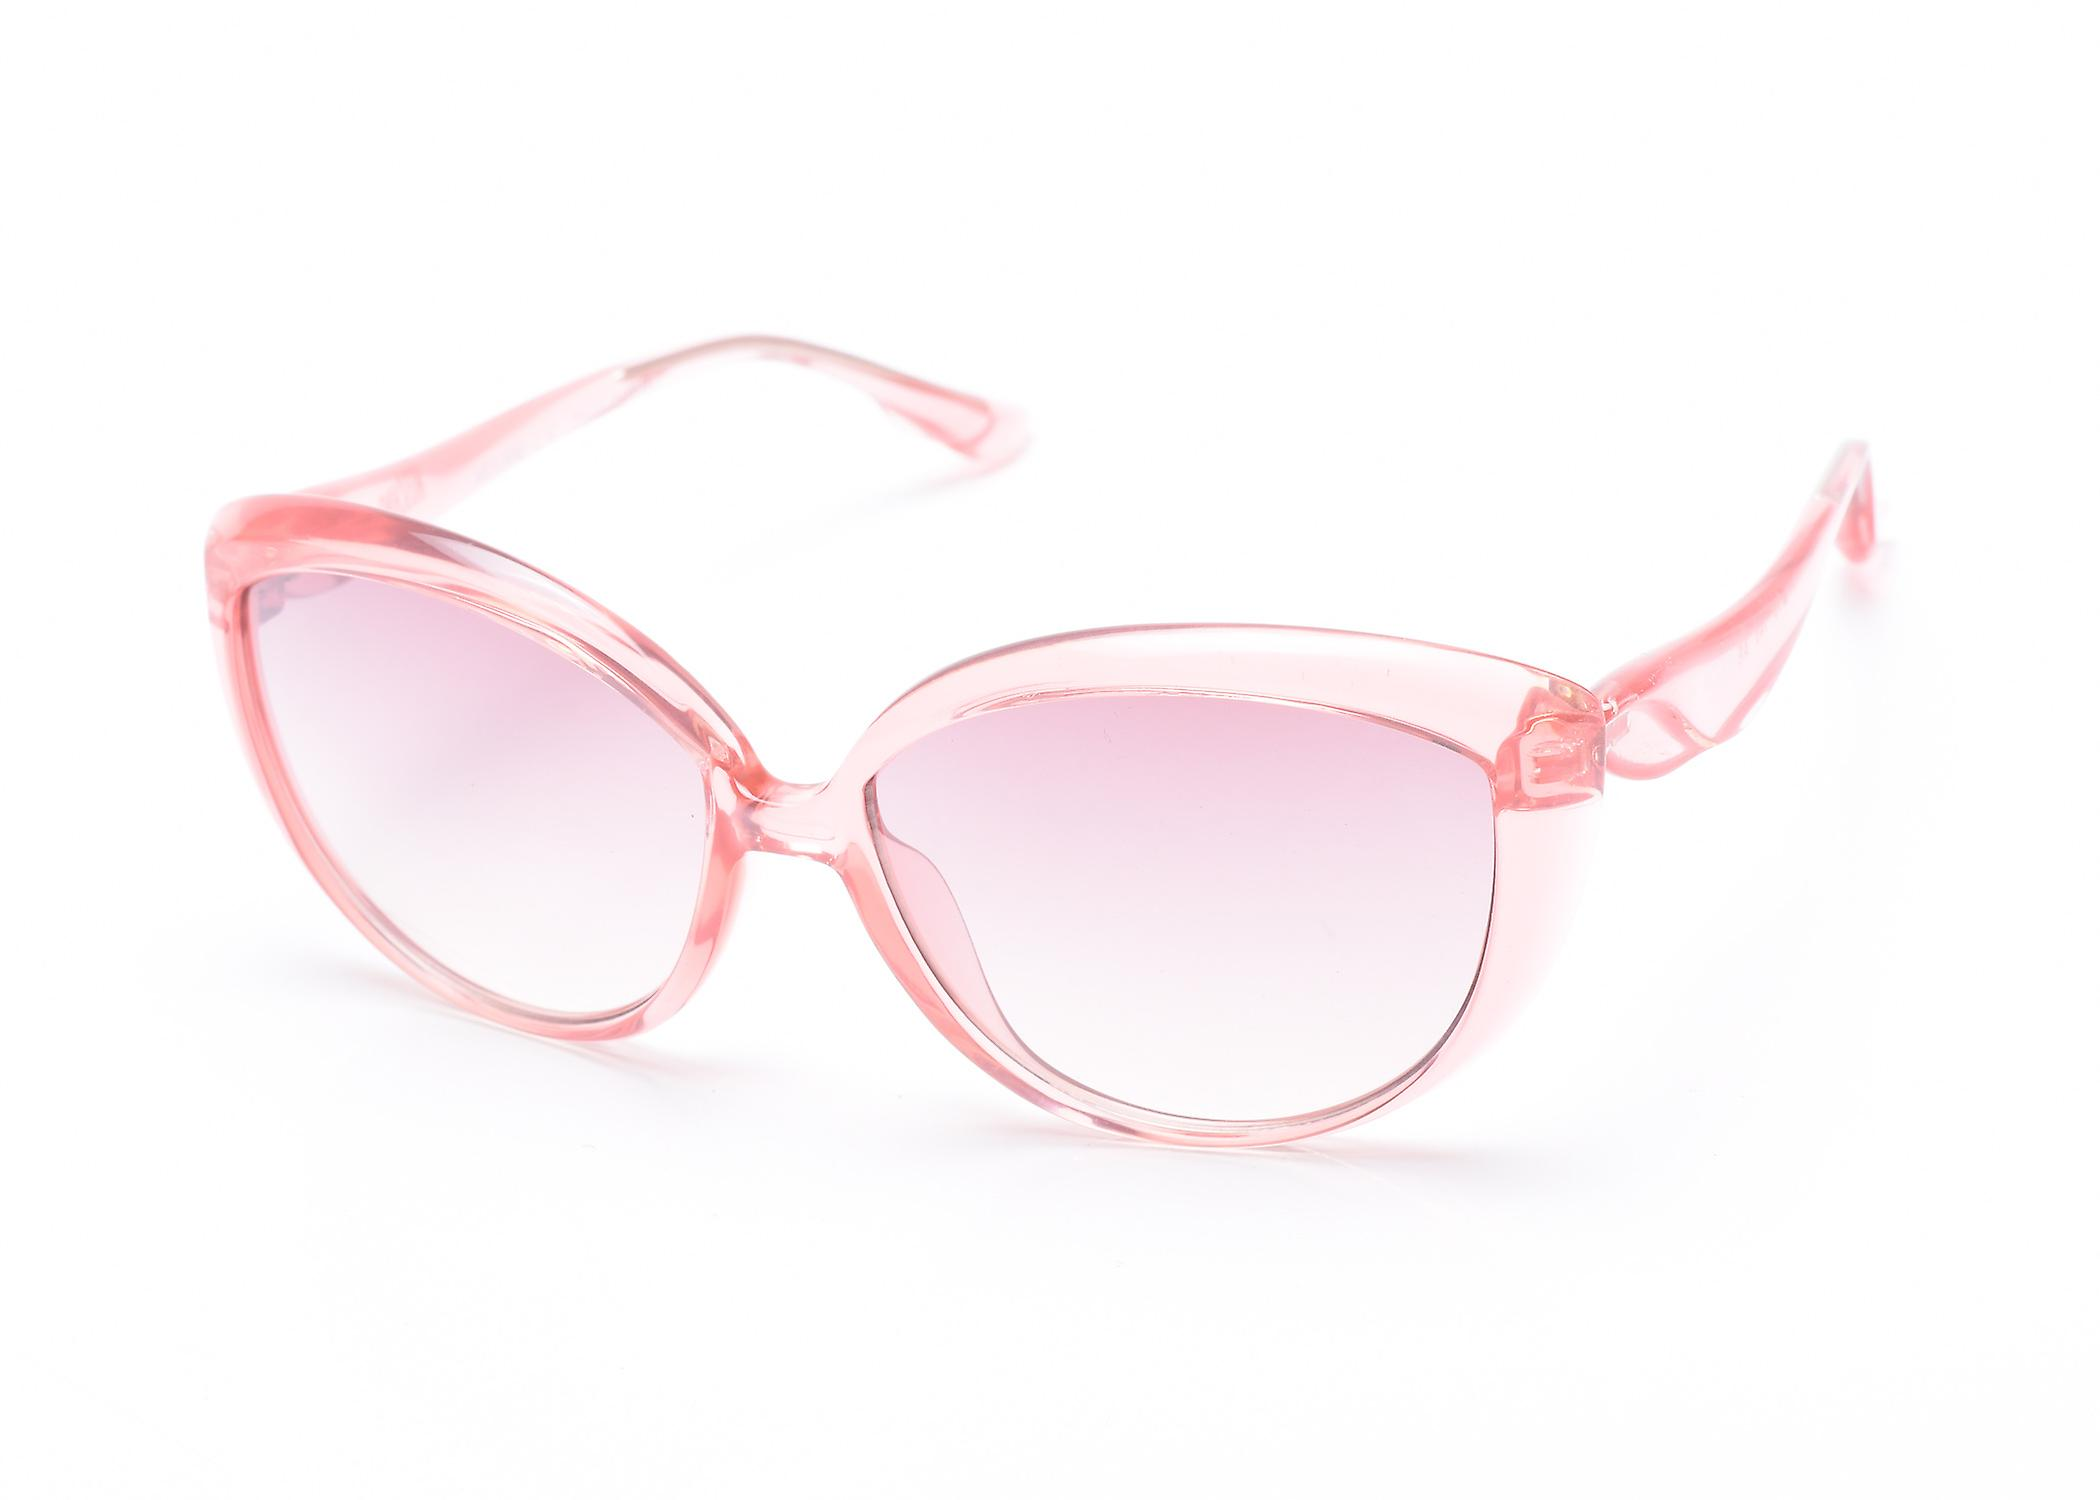 Moschino Women's  Oversized Cat Eye Sunglasses Pink